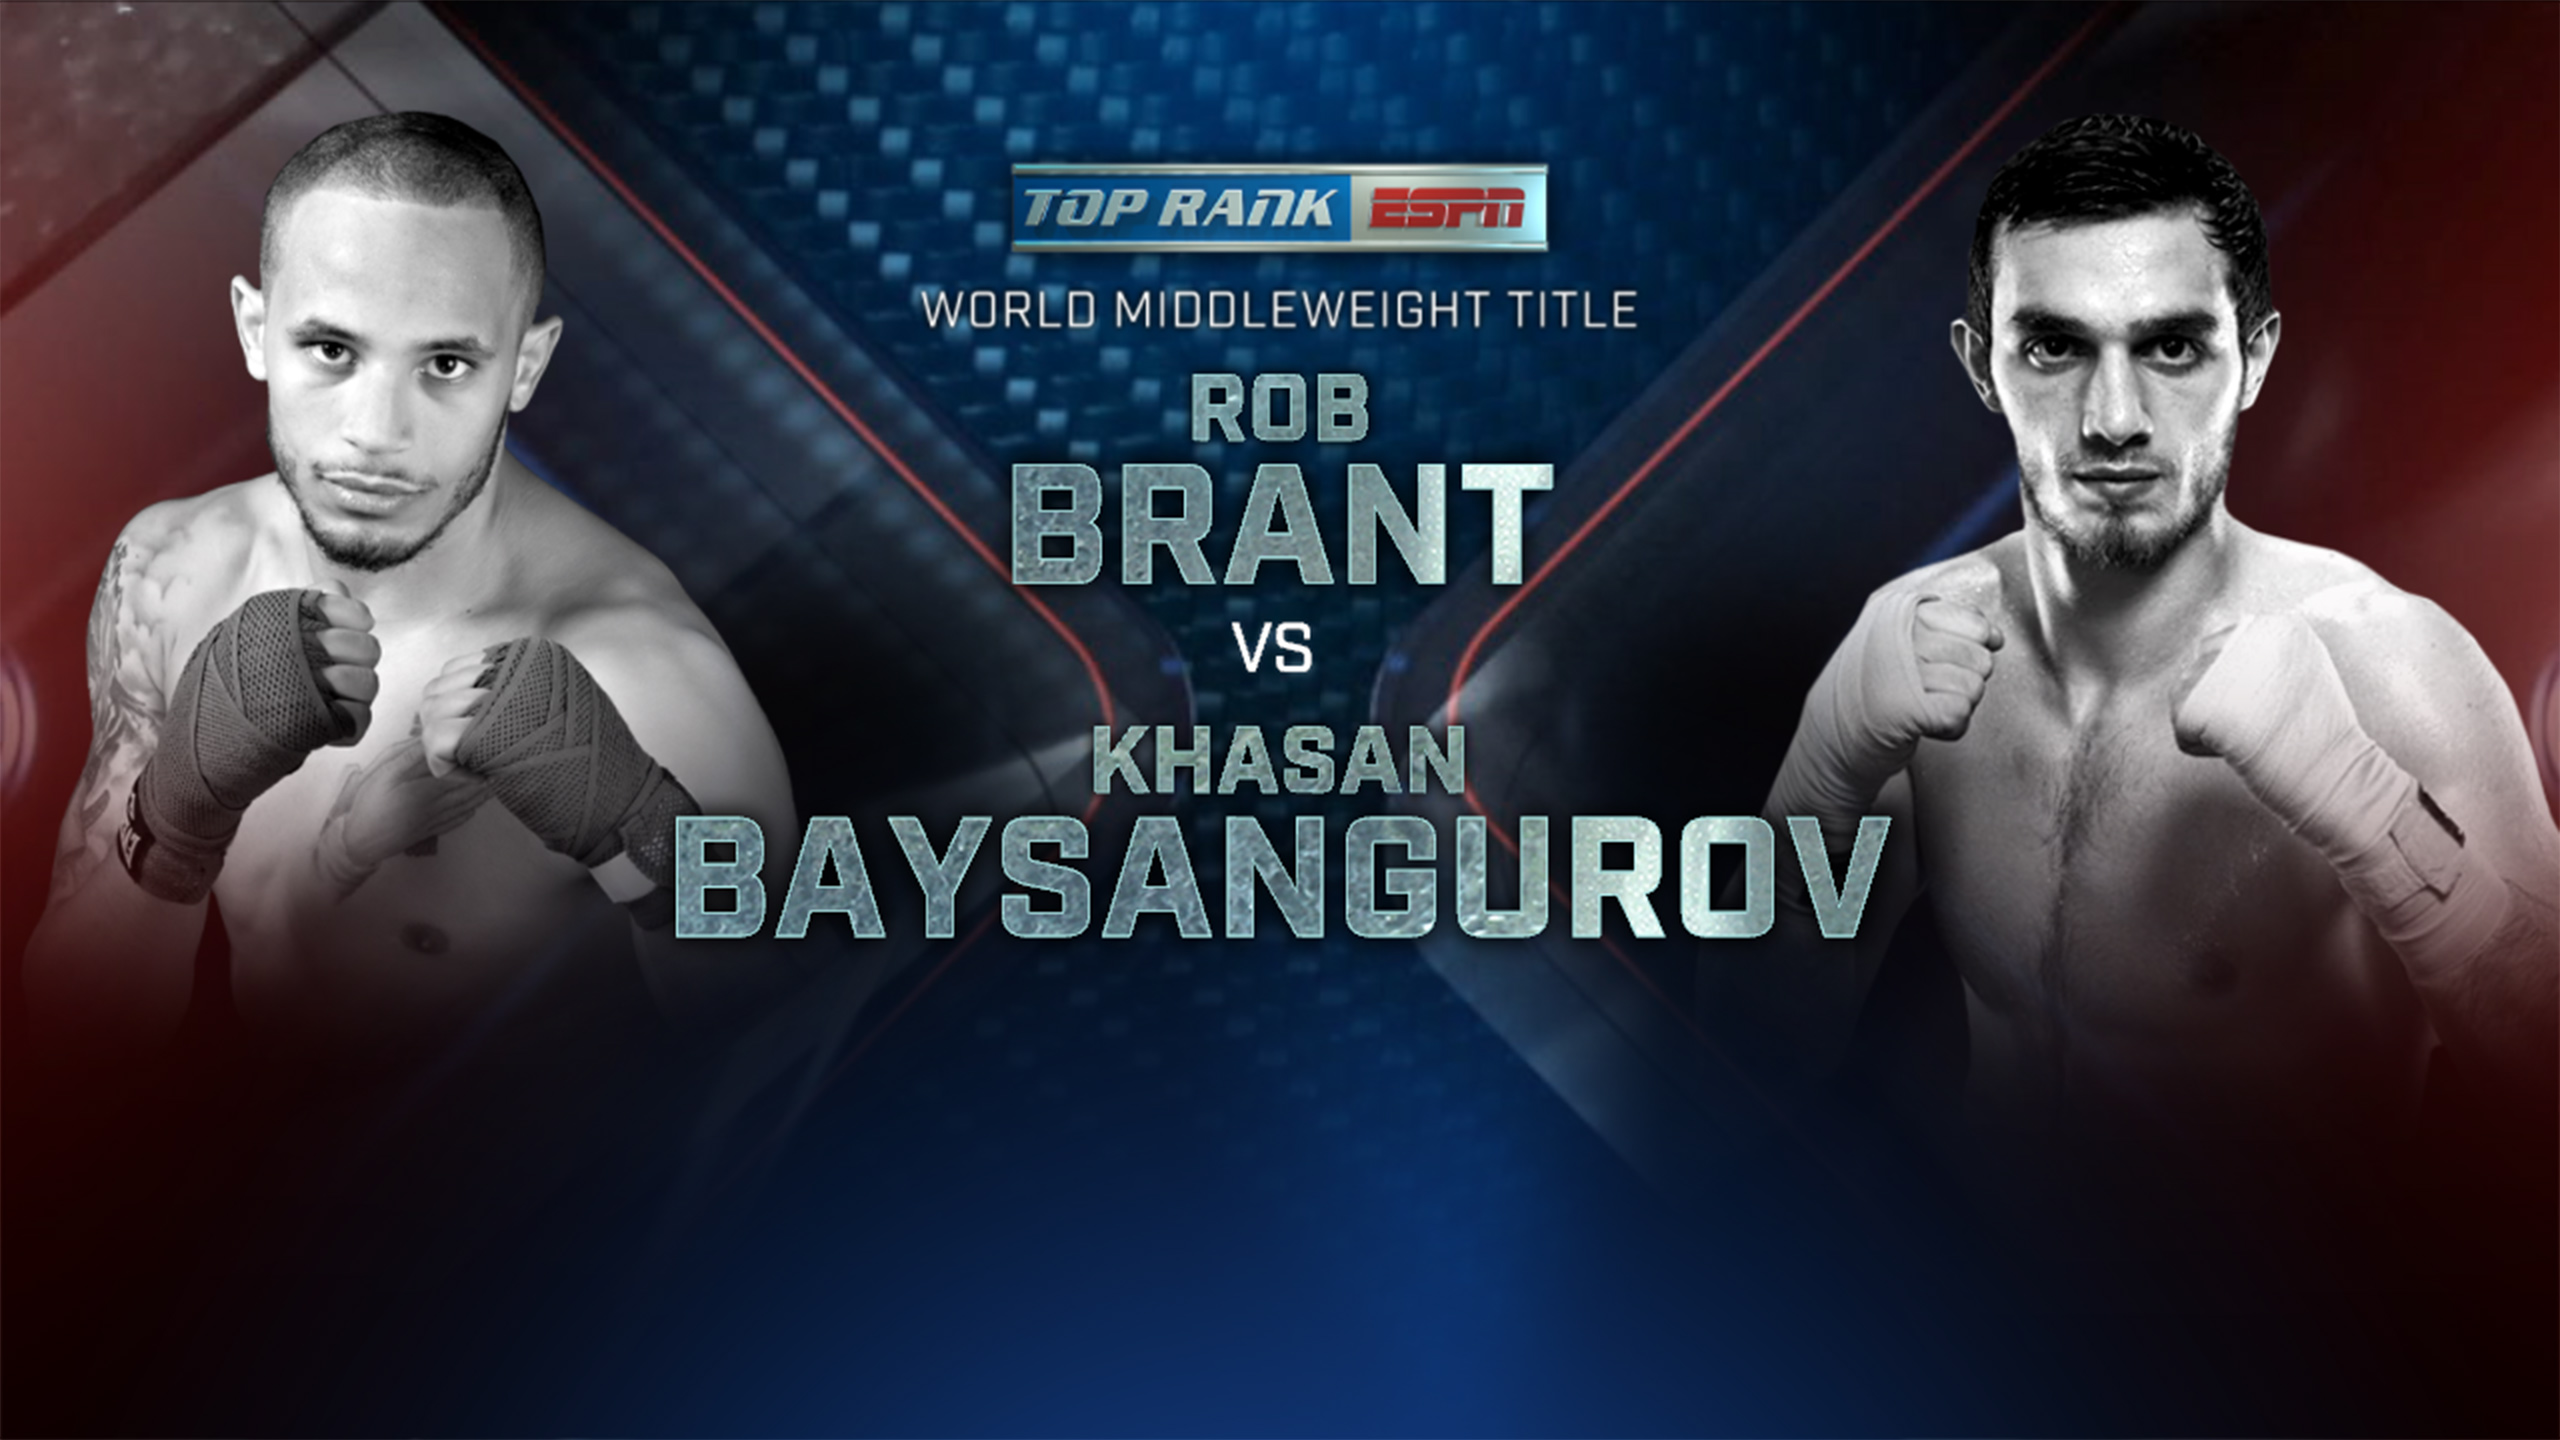 In Spanish - Rob Brant vs. Khasan Baysangurov